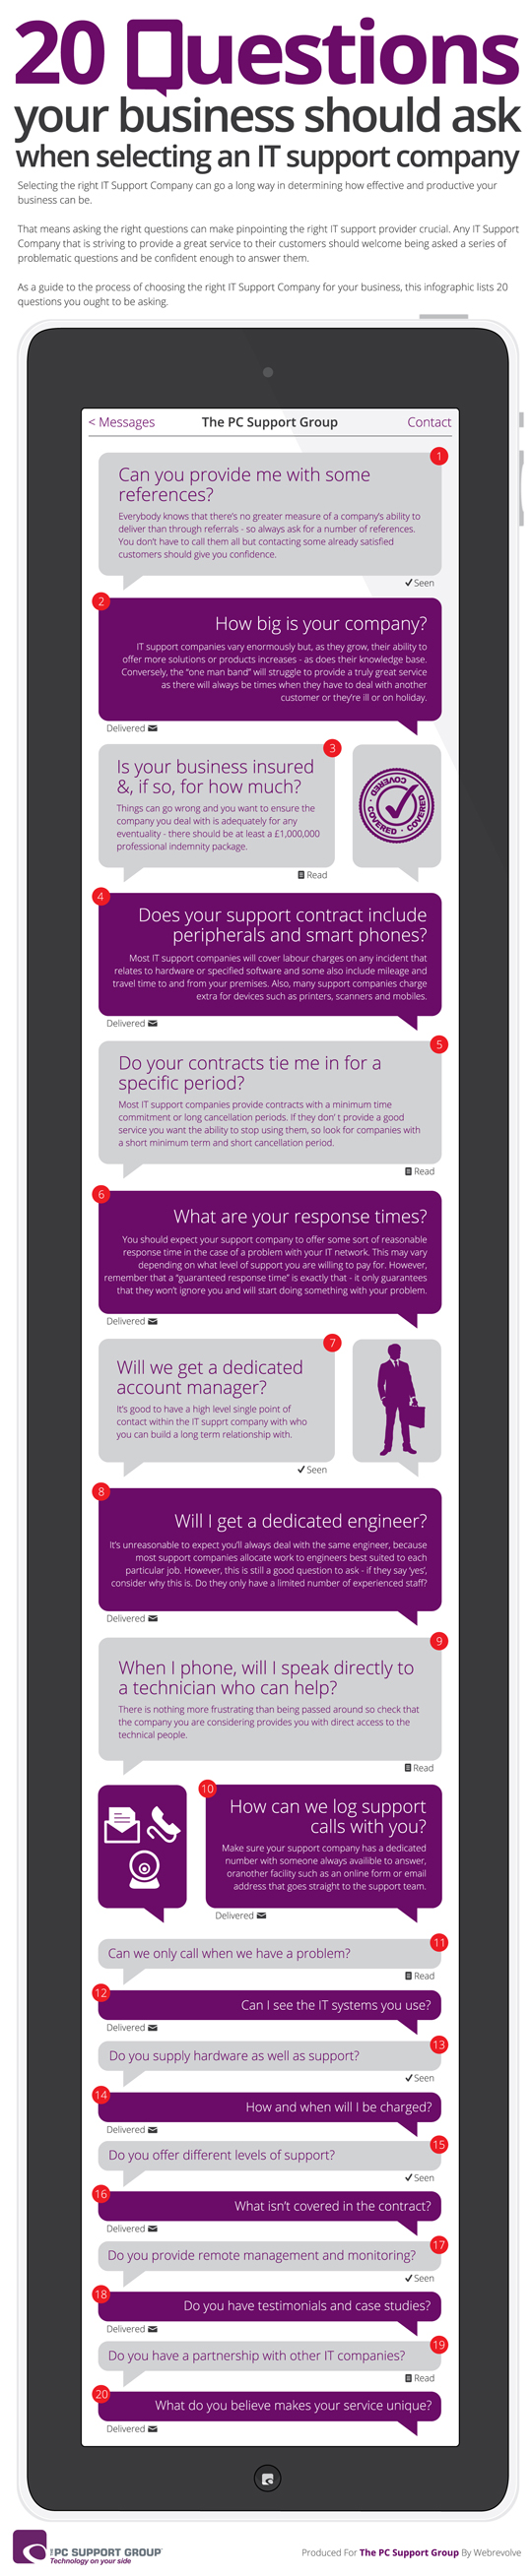 20 Questions To Ask Your IT Support Company